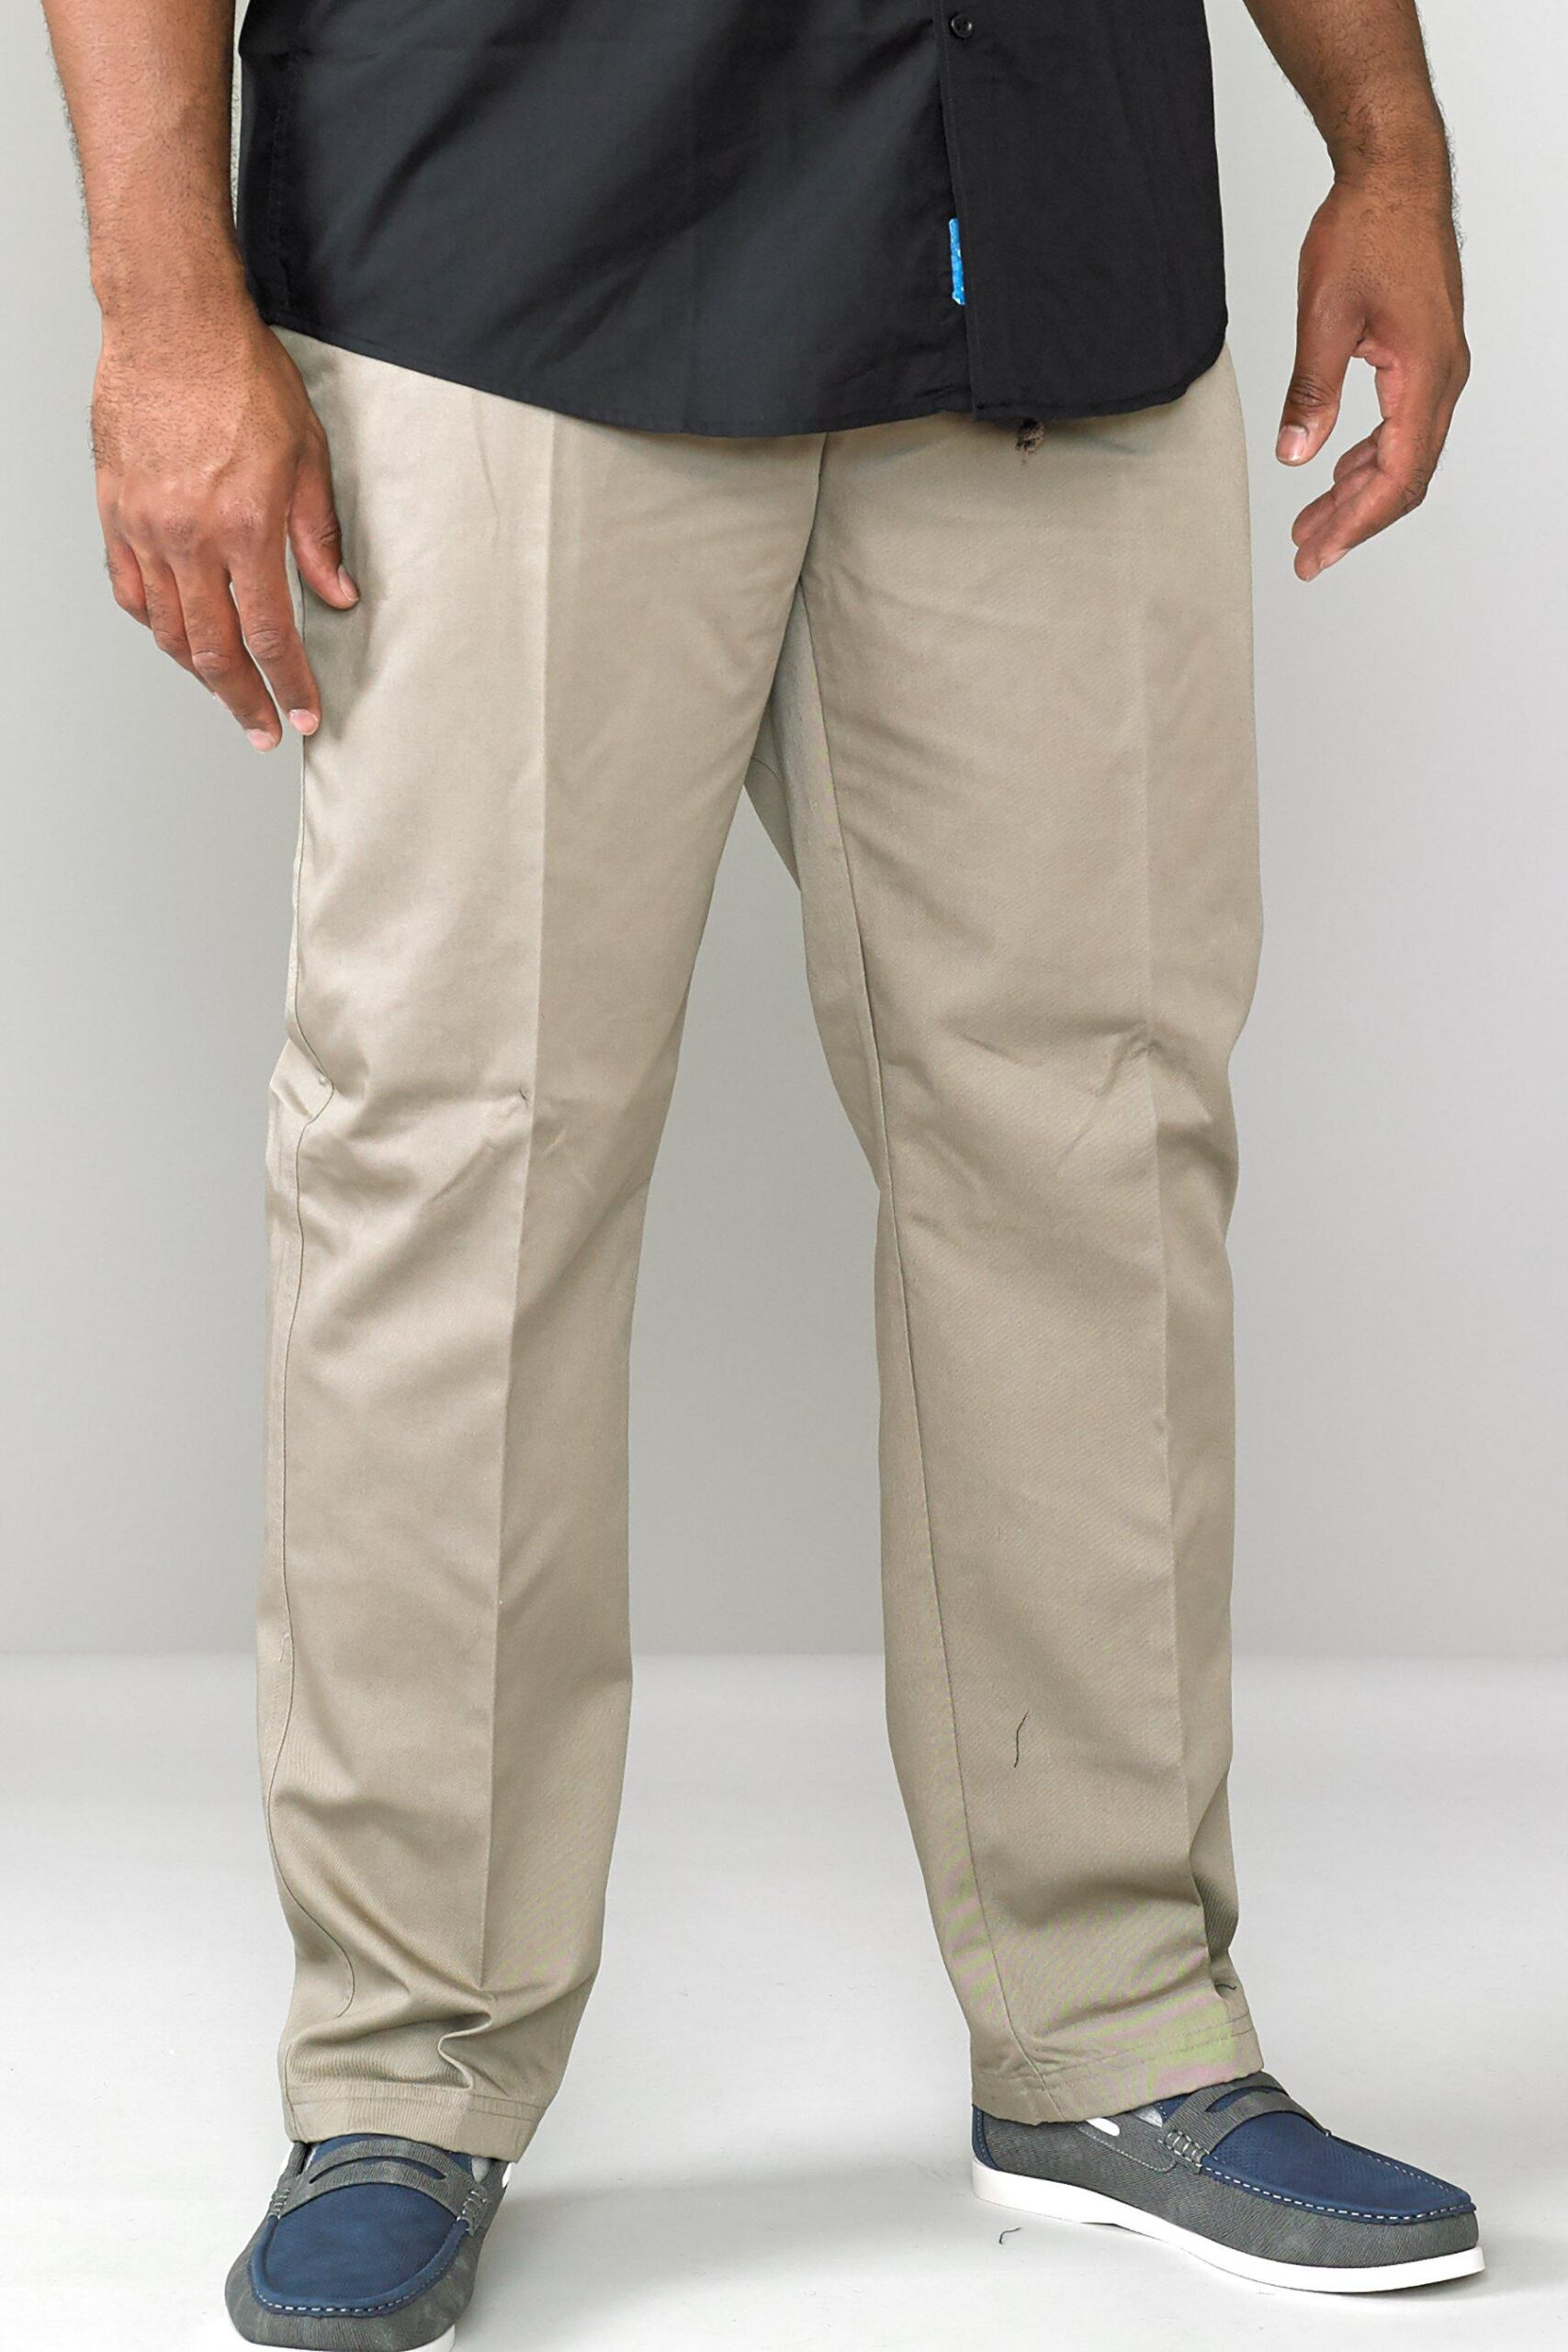 D555 by Duke Big and Tall Elastic Trousers